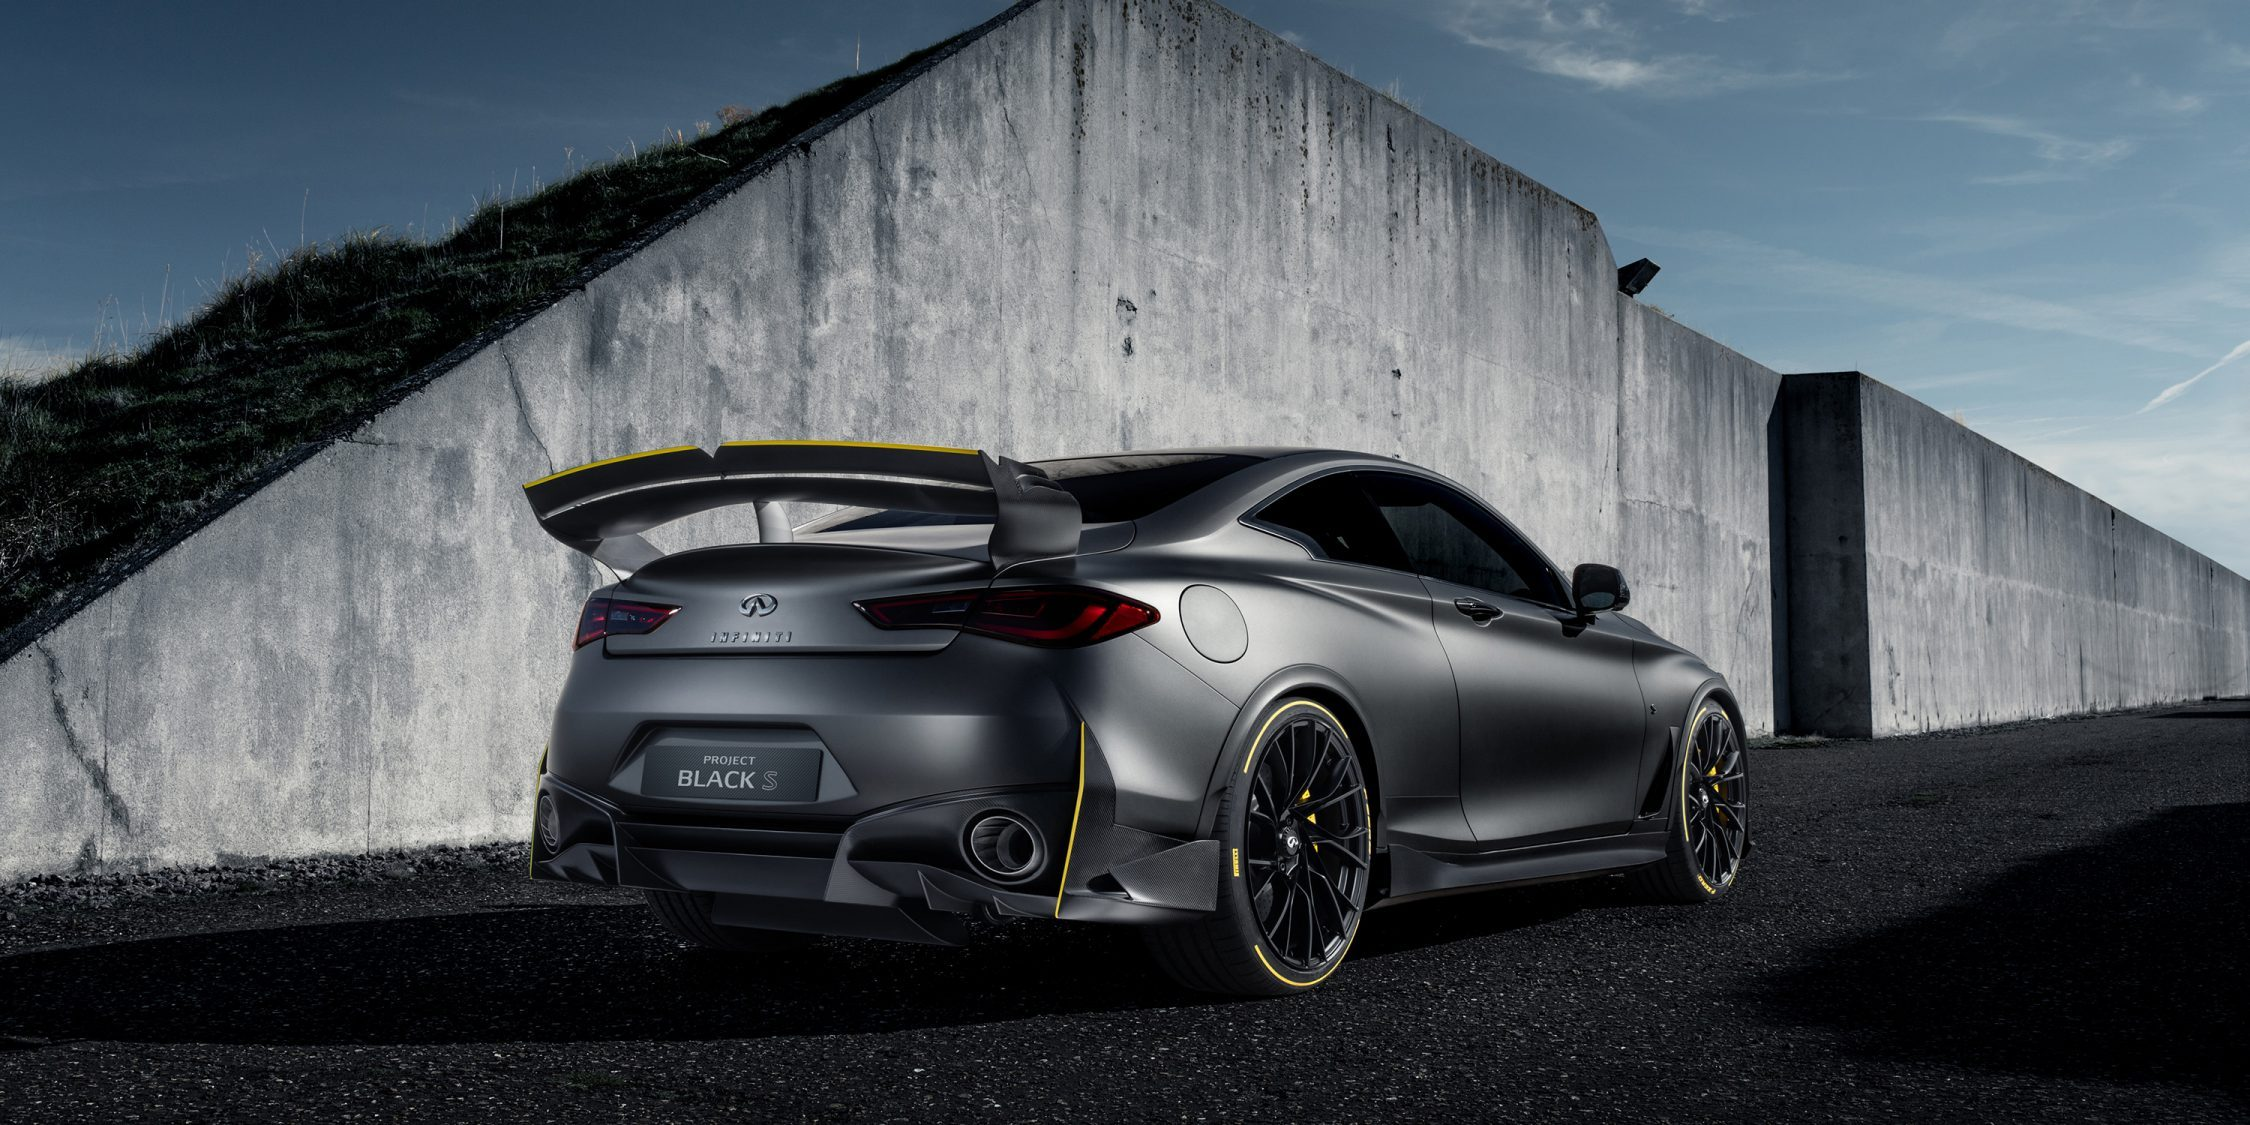 Rear of the INFINITI Project Black S high performance vehicle driving away